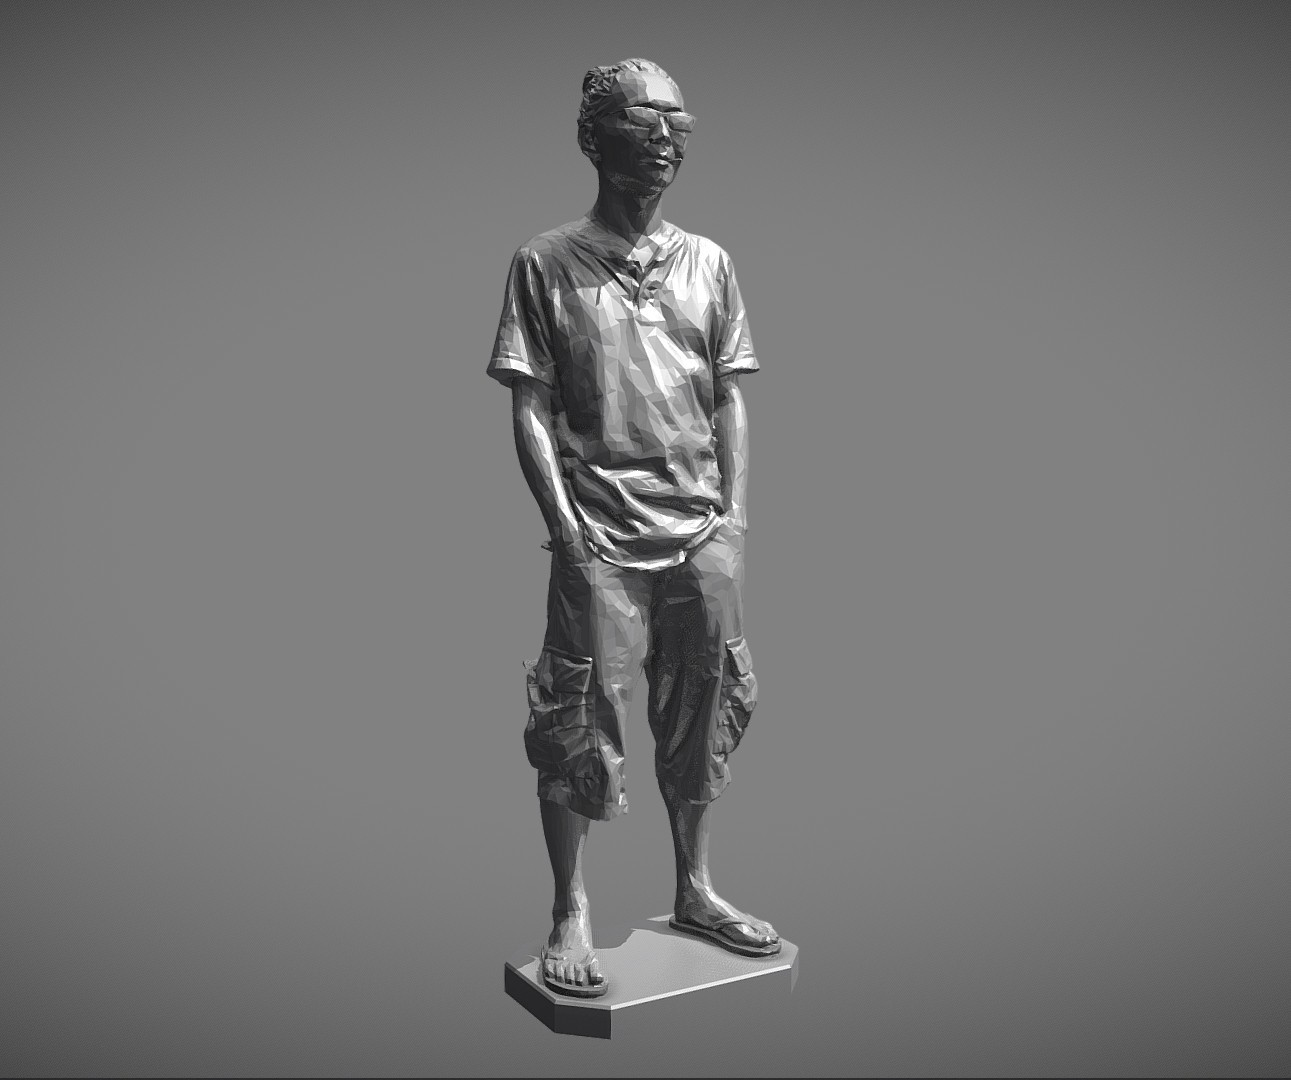 3D models by mwopus (@mwopus) - Sketchfab20190320-007959.jpg Download STL file MW 3D printing test-Low,Medium,High • Template to 3D print, MWopus